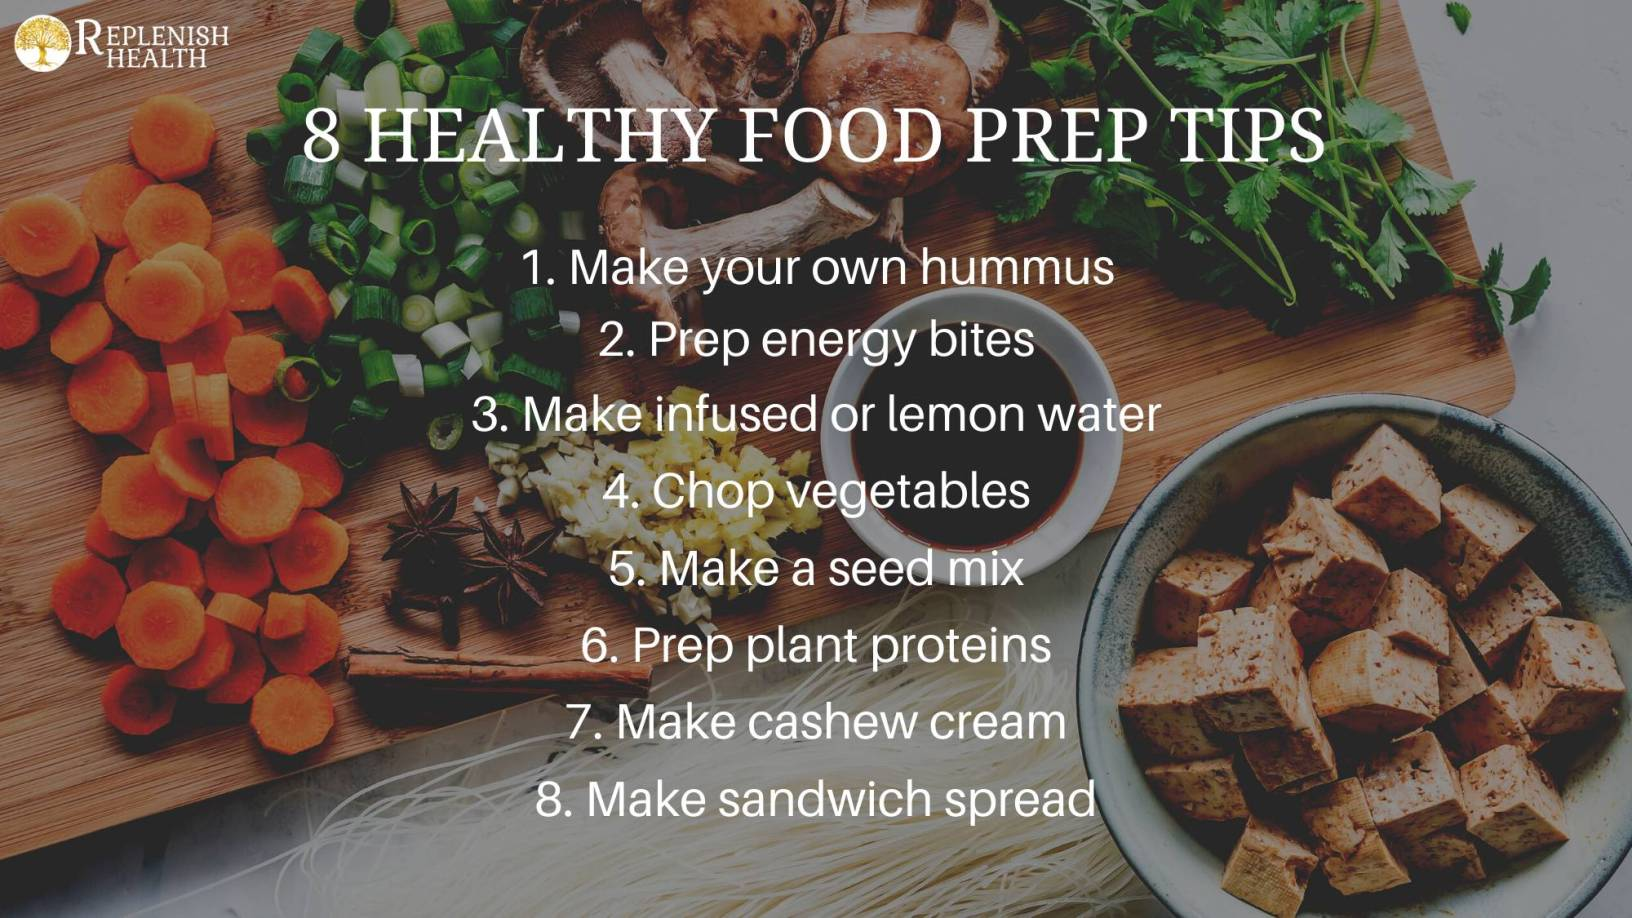 An image of 8 healthy food prep tips.